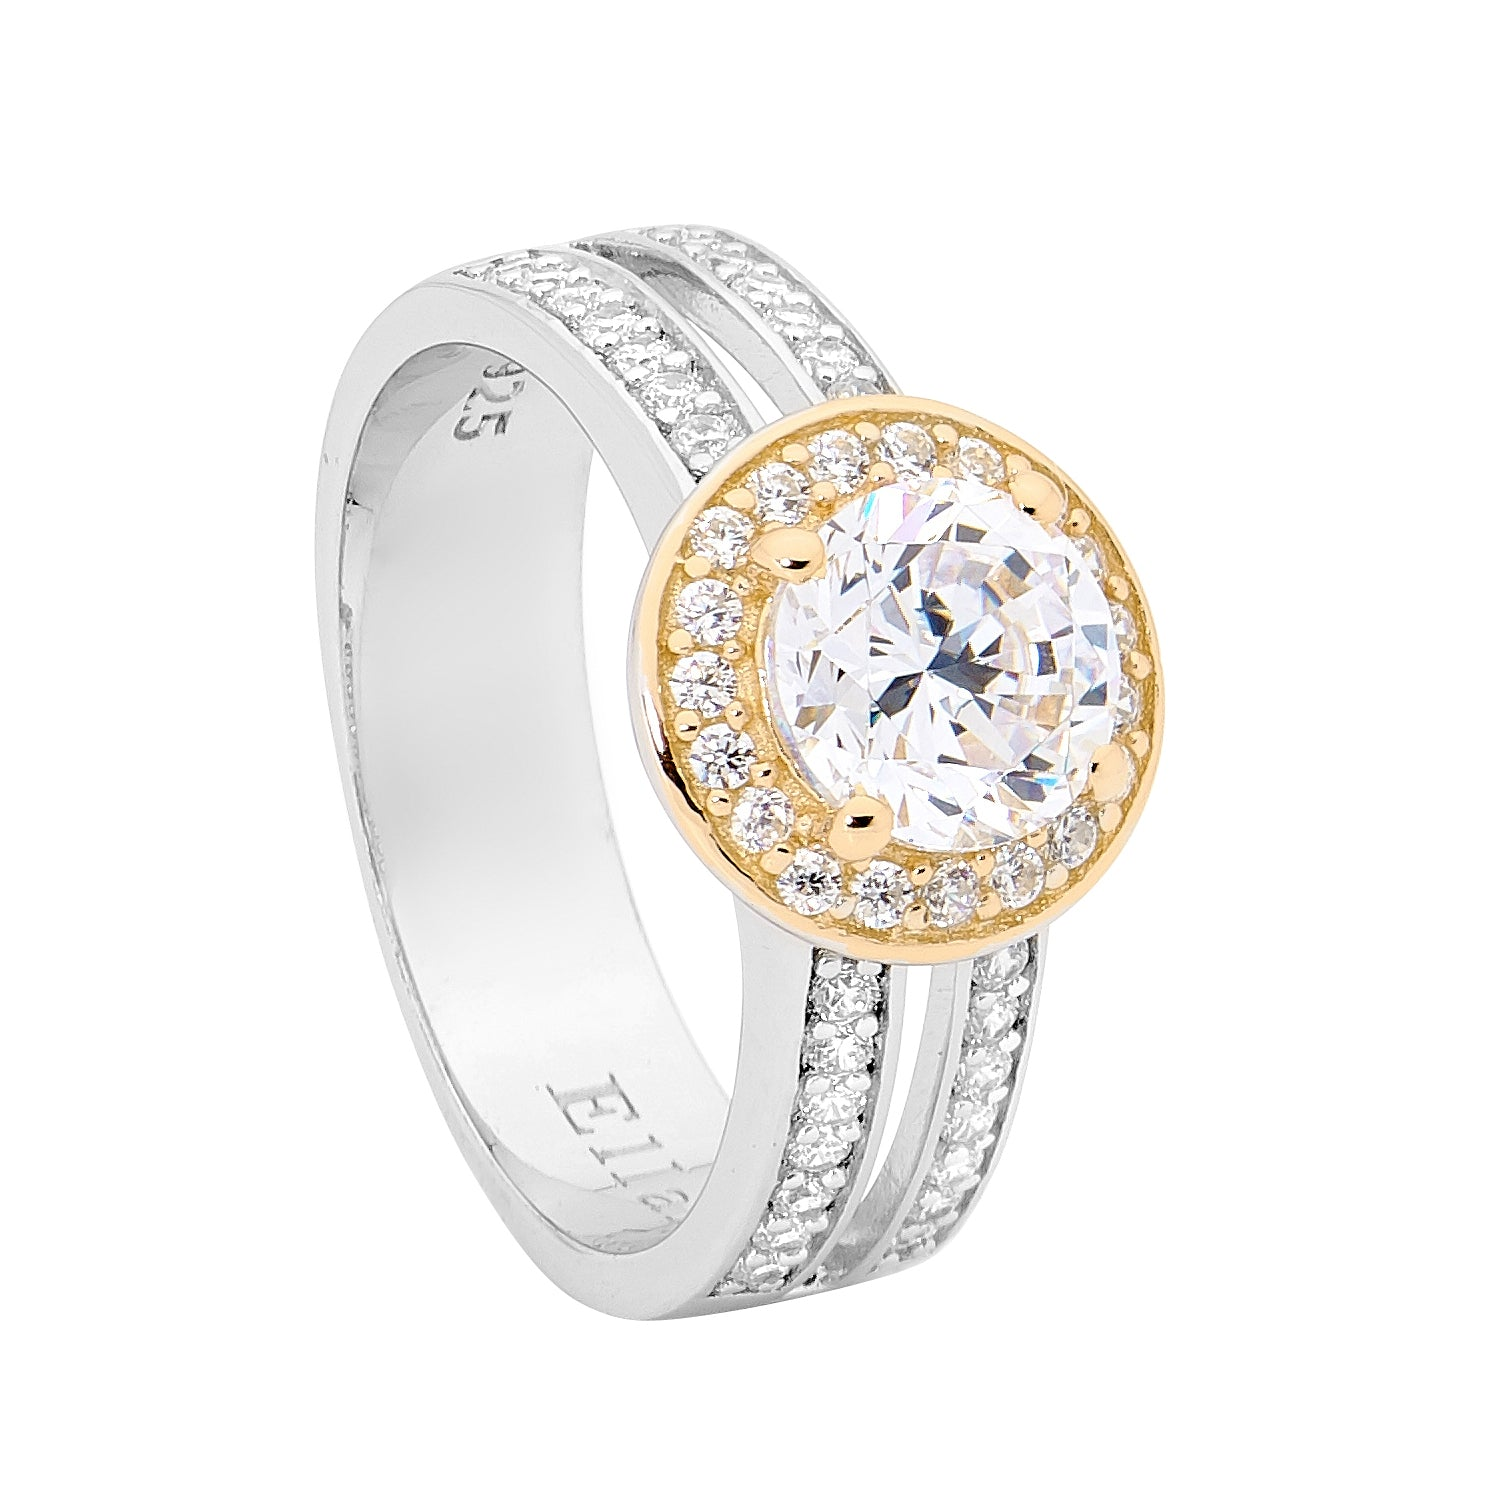 Ellani SS WH CZ Solitaire with Halo & Gold Plating Dbl Band Ring